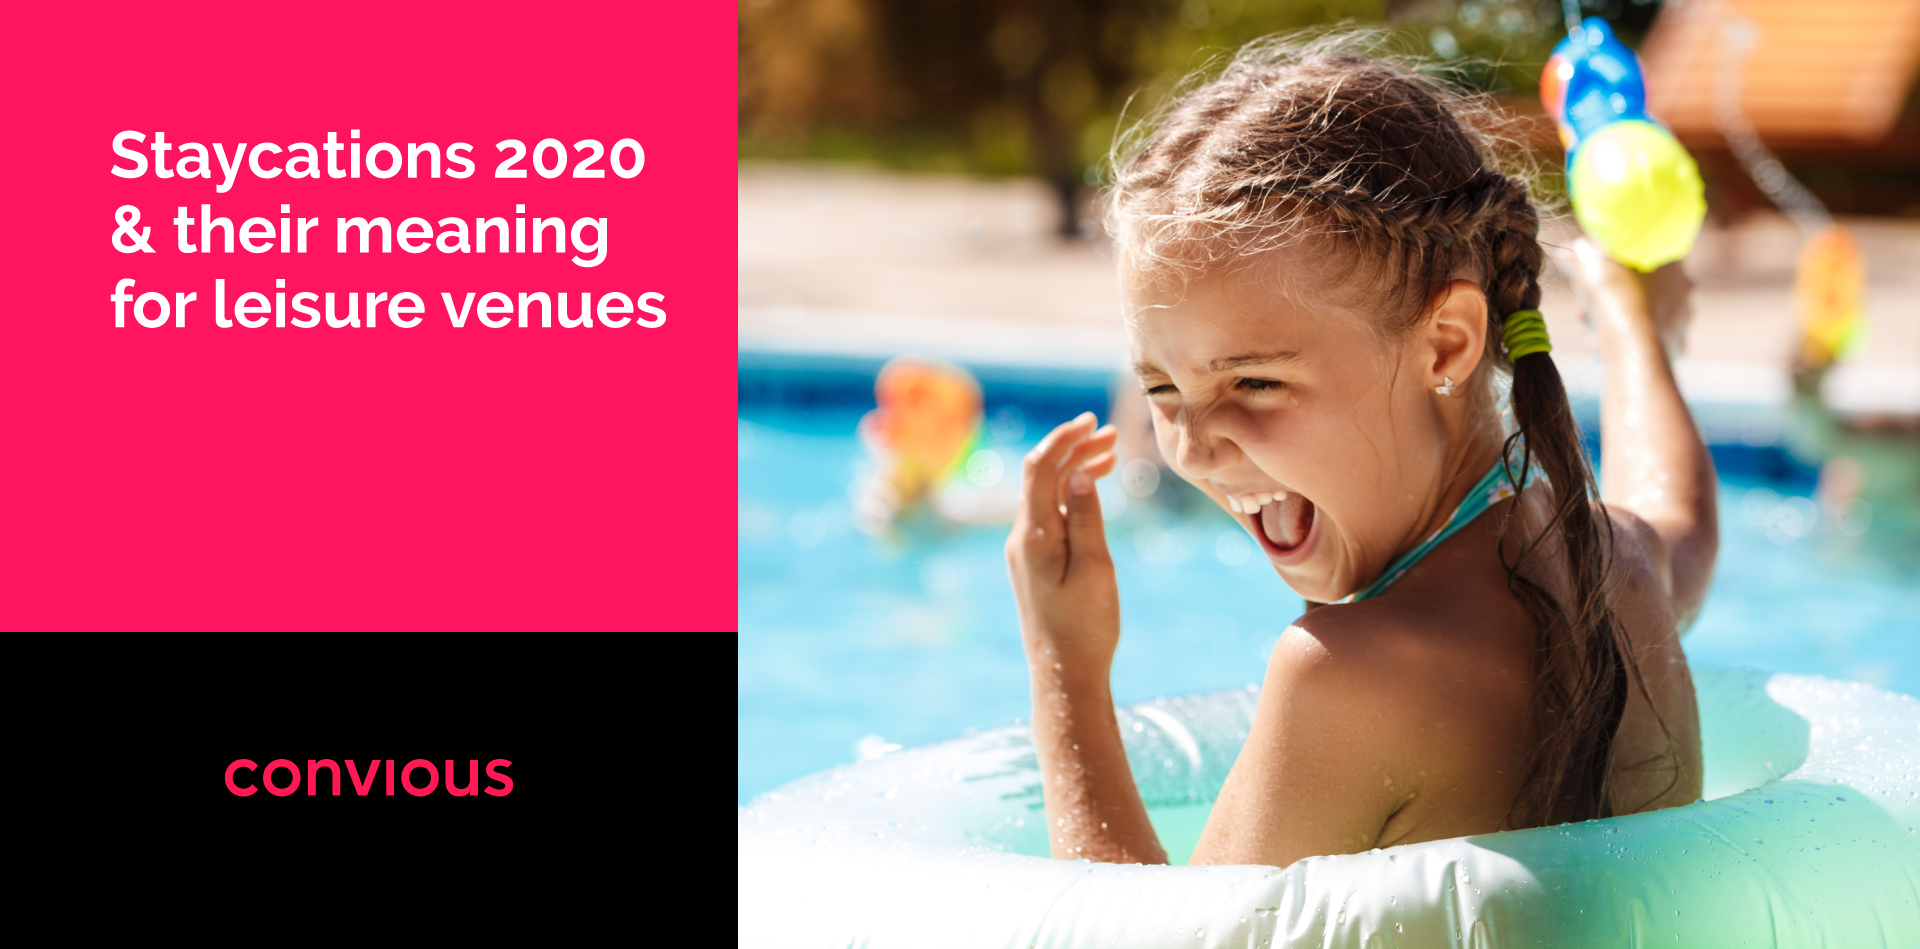 Staycations 2020 & their meaning for leisure venues